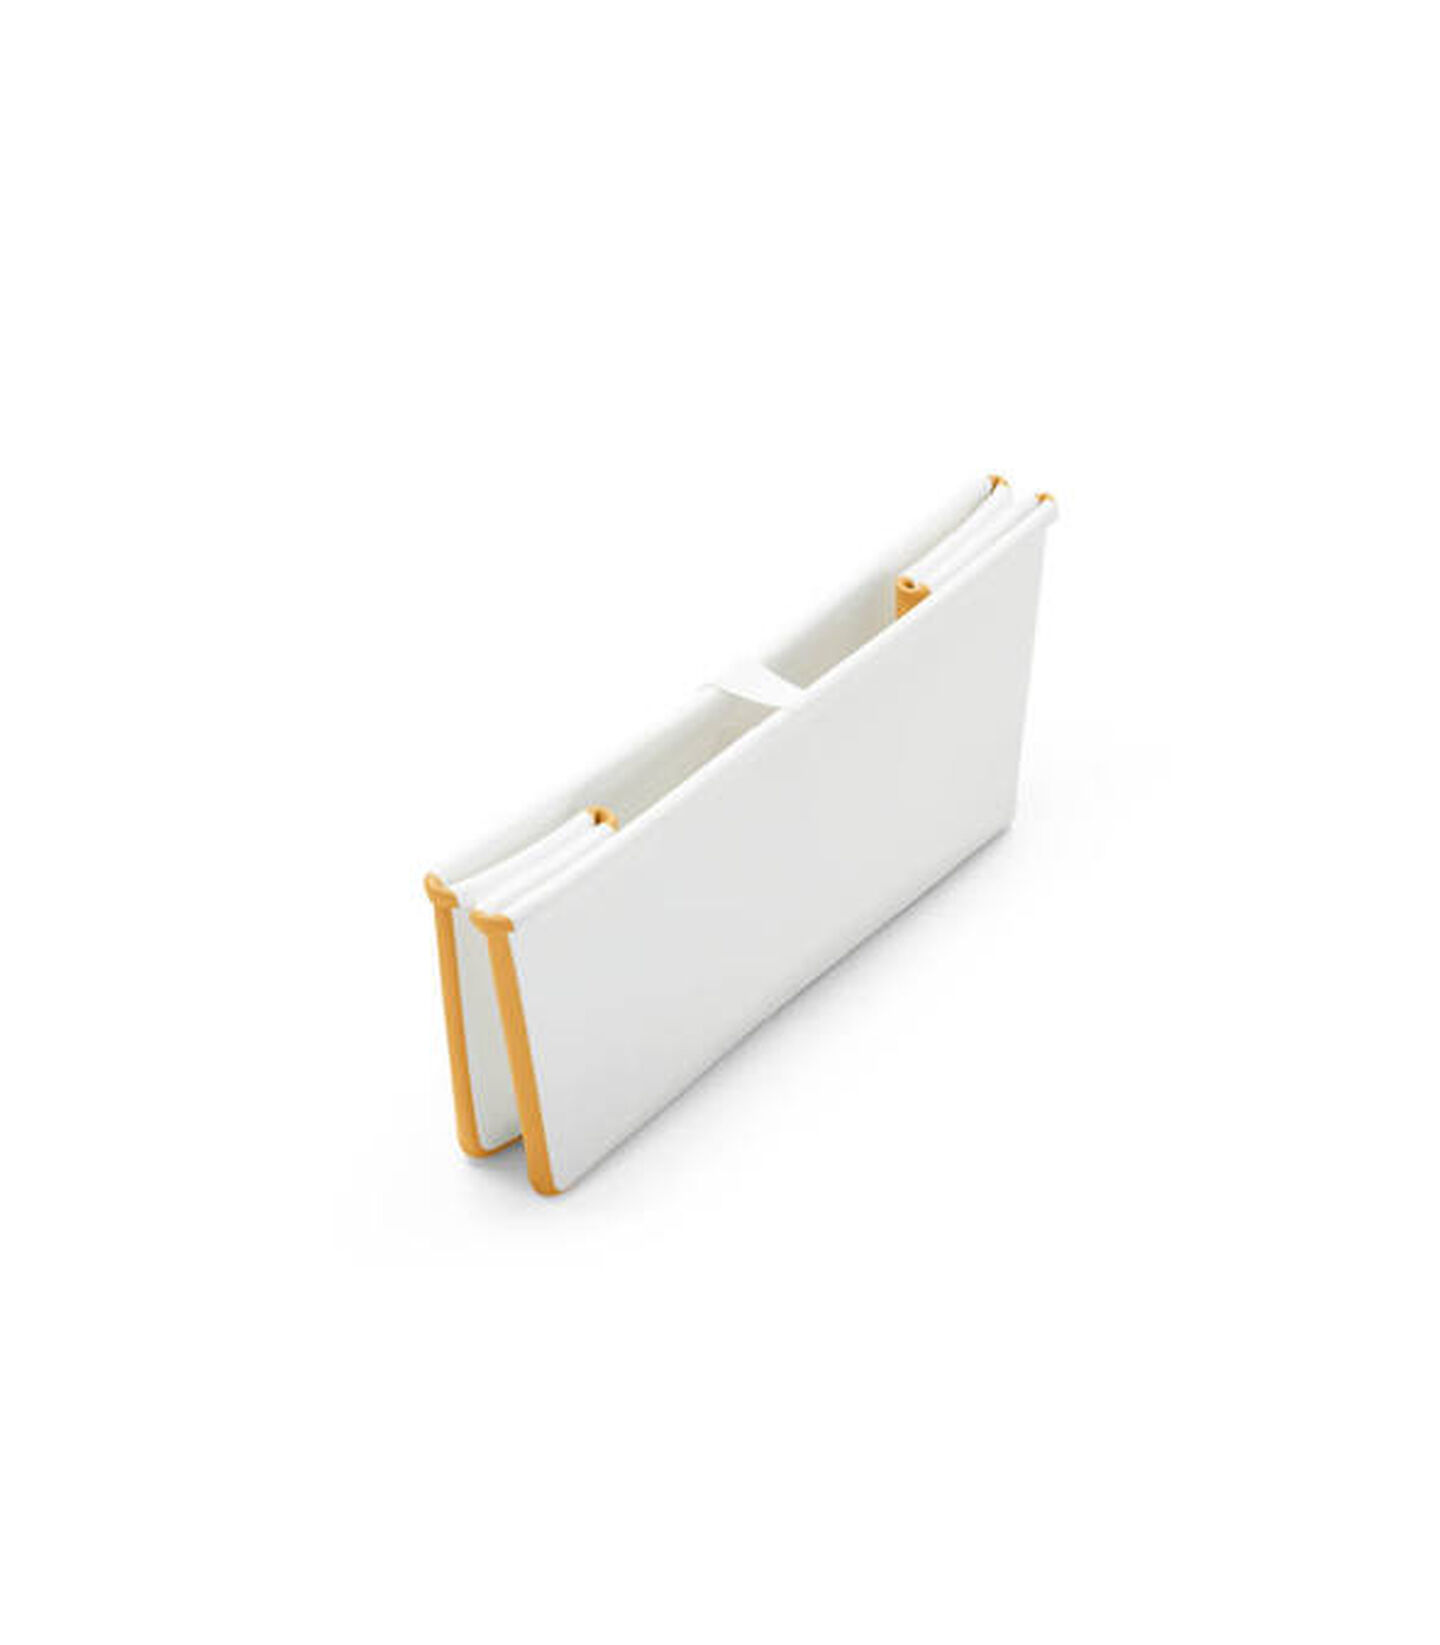 Stokke® Flexi Bath® bath tub, White and Yellow. Folded.